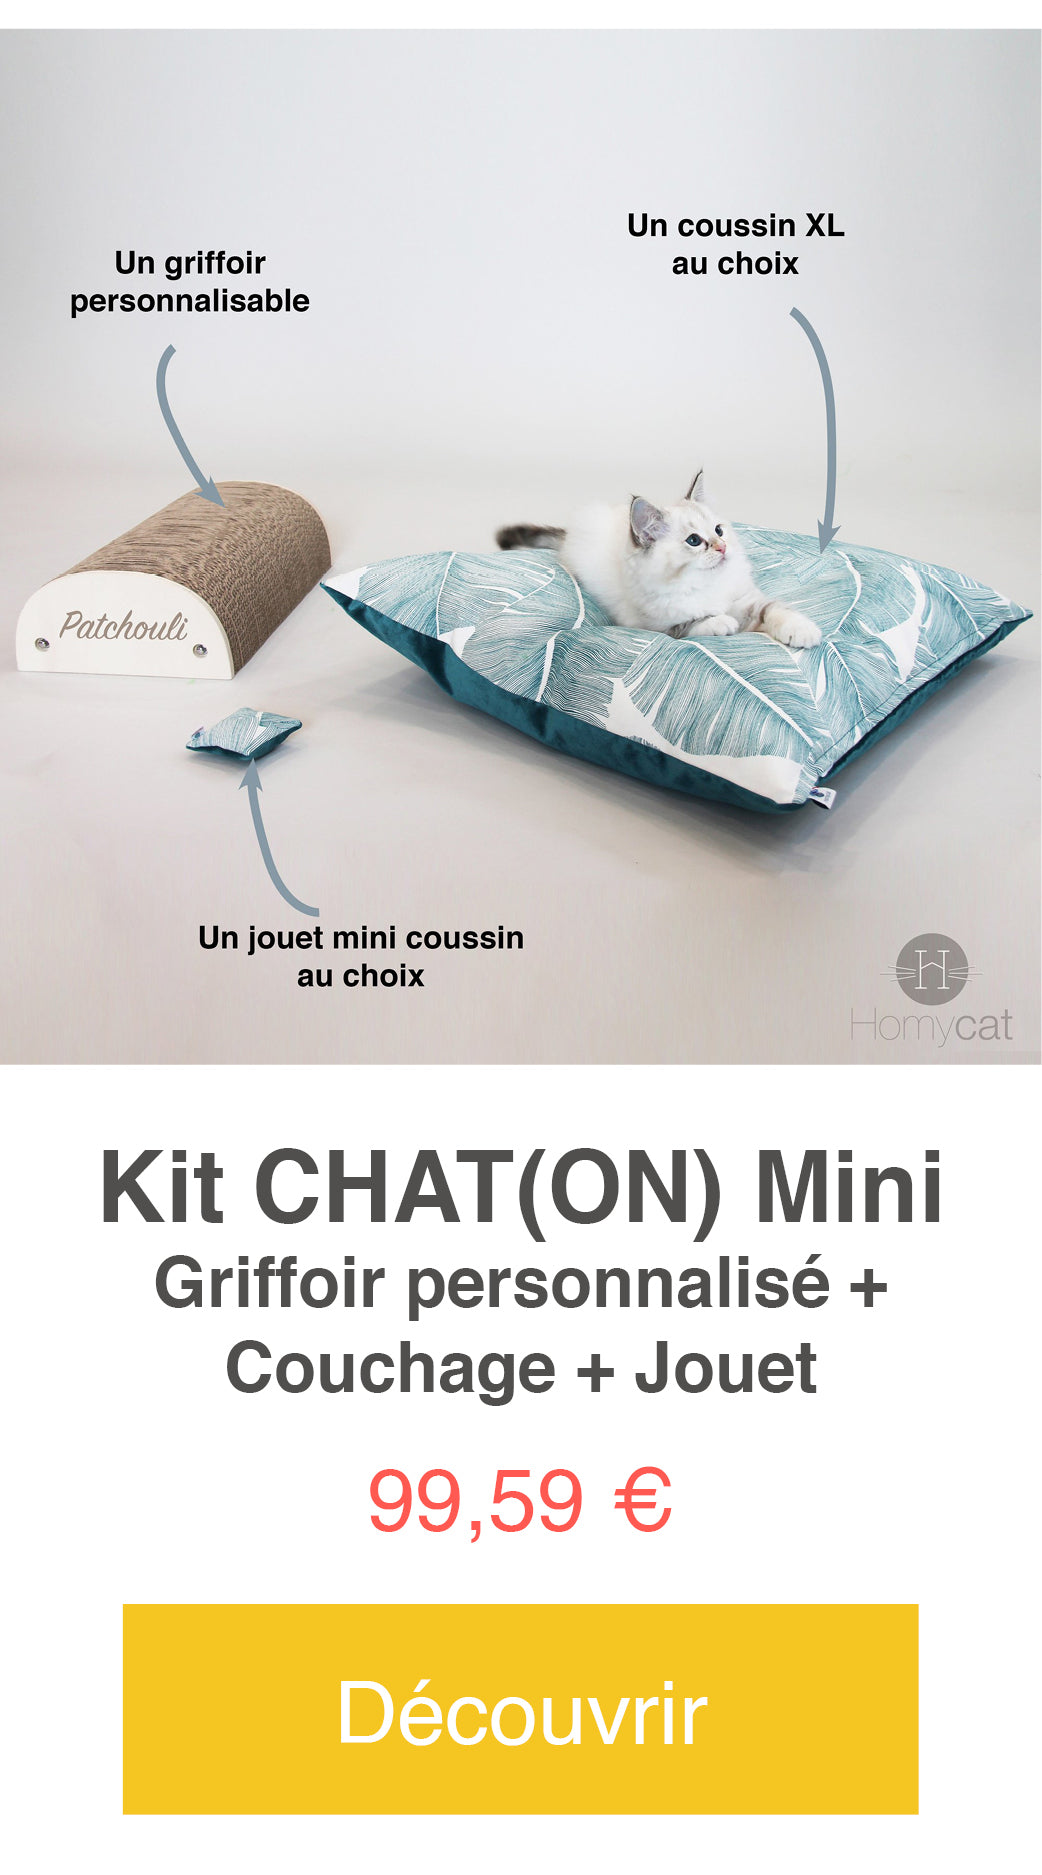 kit chaton homycat couchage coussin griffoir jouet cataire chat